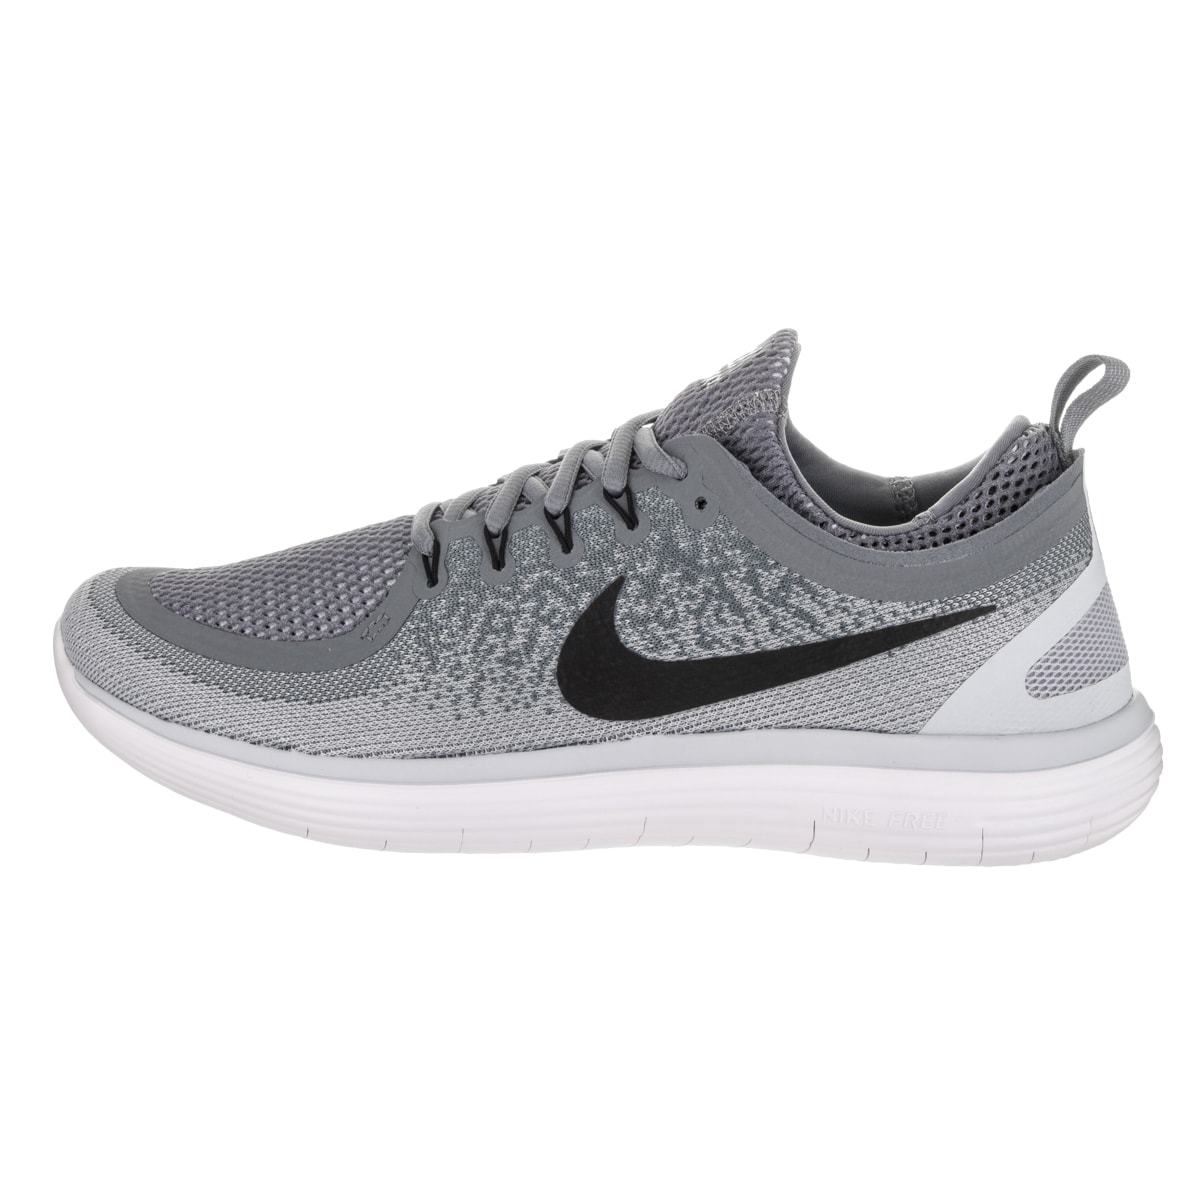 a8e904697f4fe Nike Men's Free RN Distance 2 Running Shoes